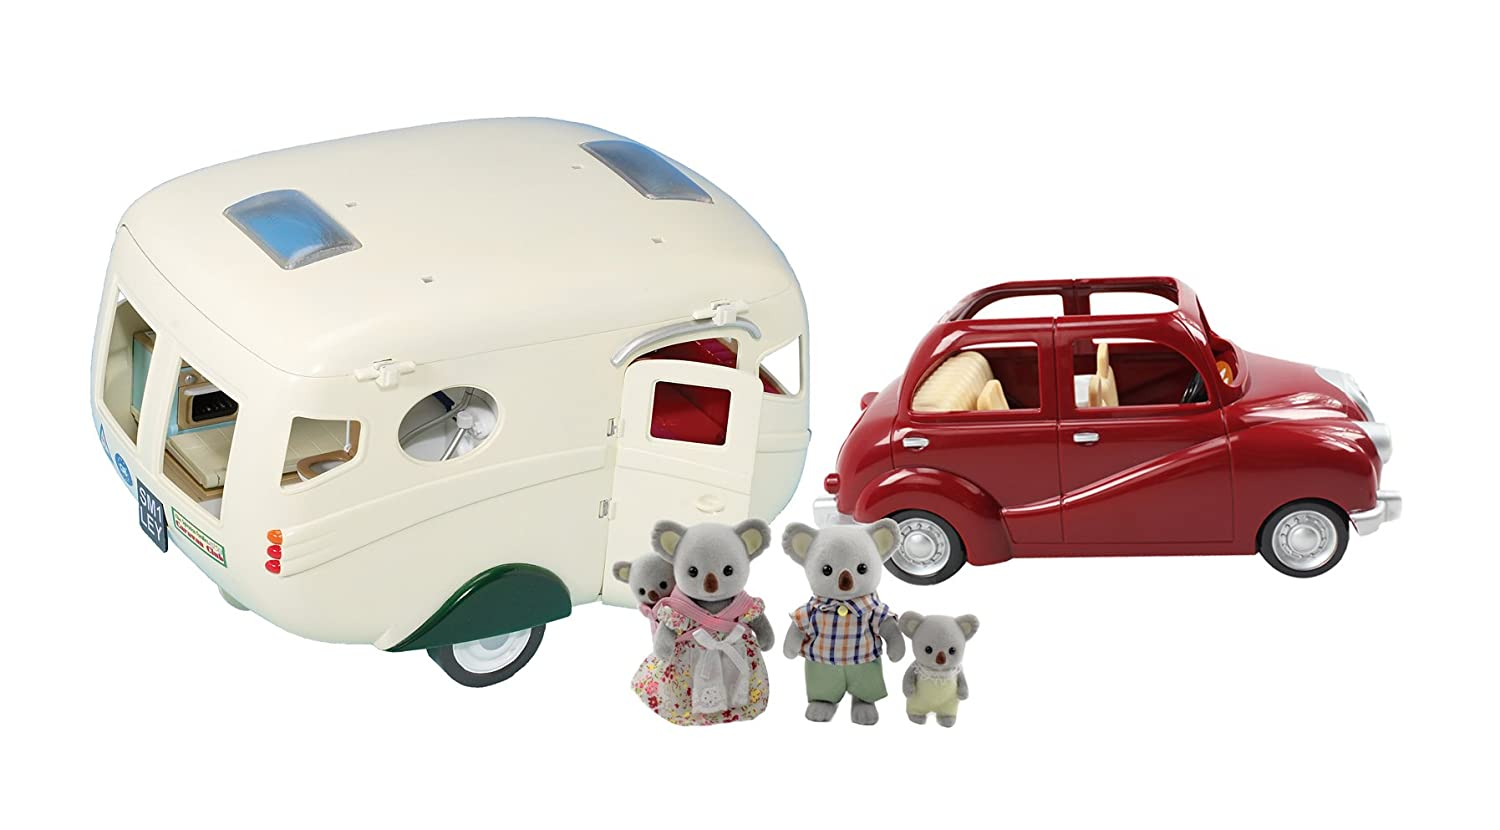 Calico Critters Caravan Camper, Cherry Cruiser and Koala